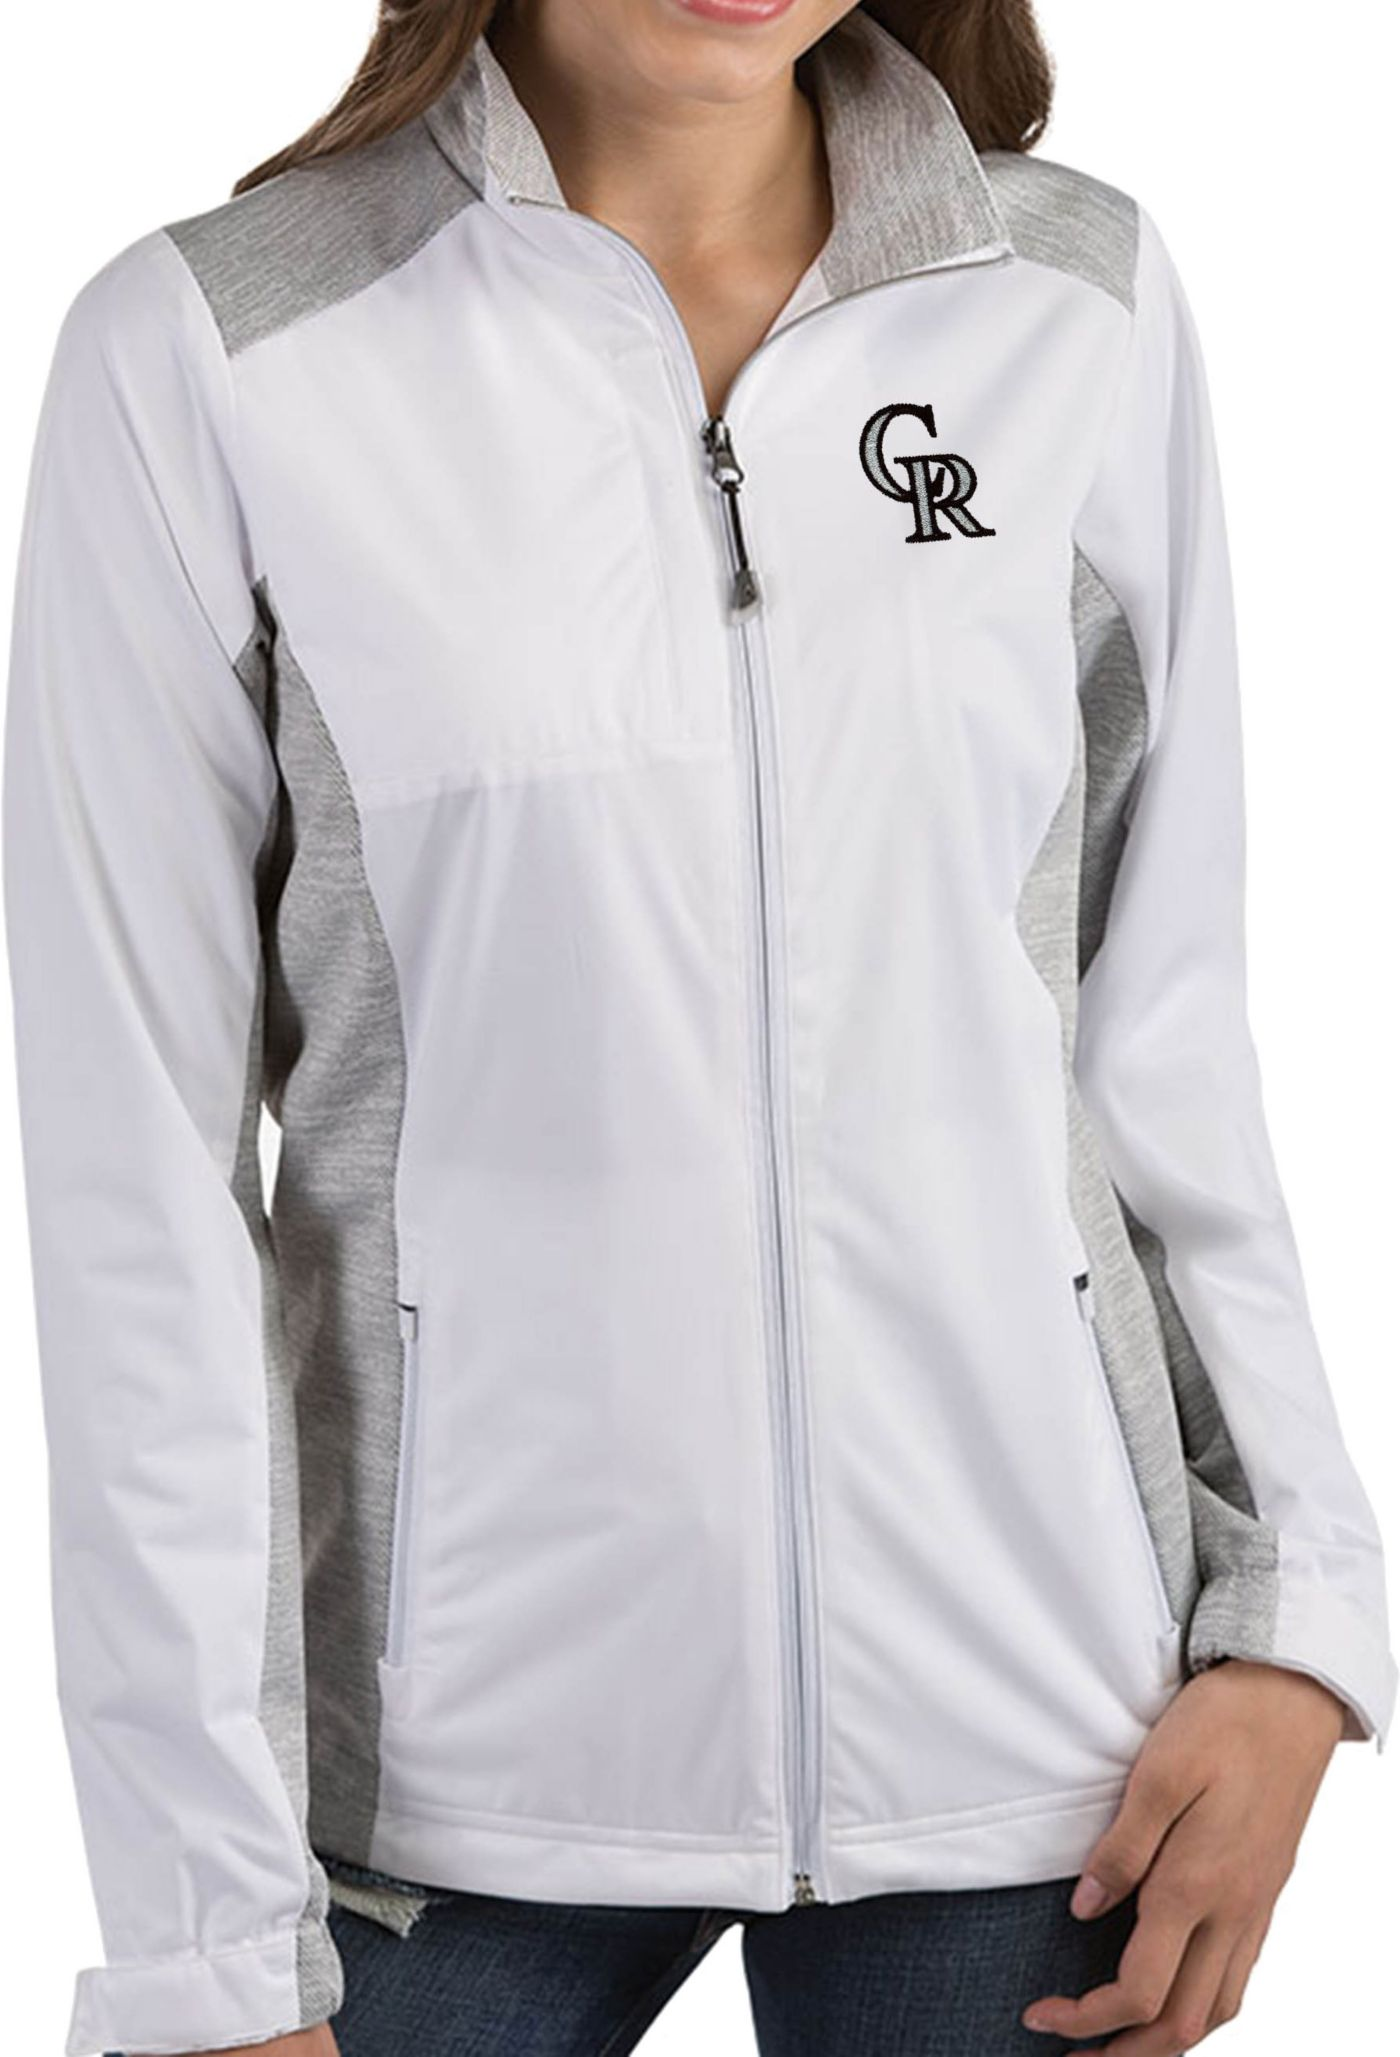 Antigua Women's Colorado Rockies Revolve White Full-Zip Jacket